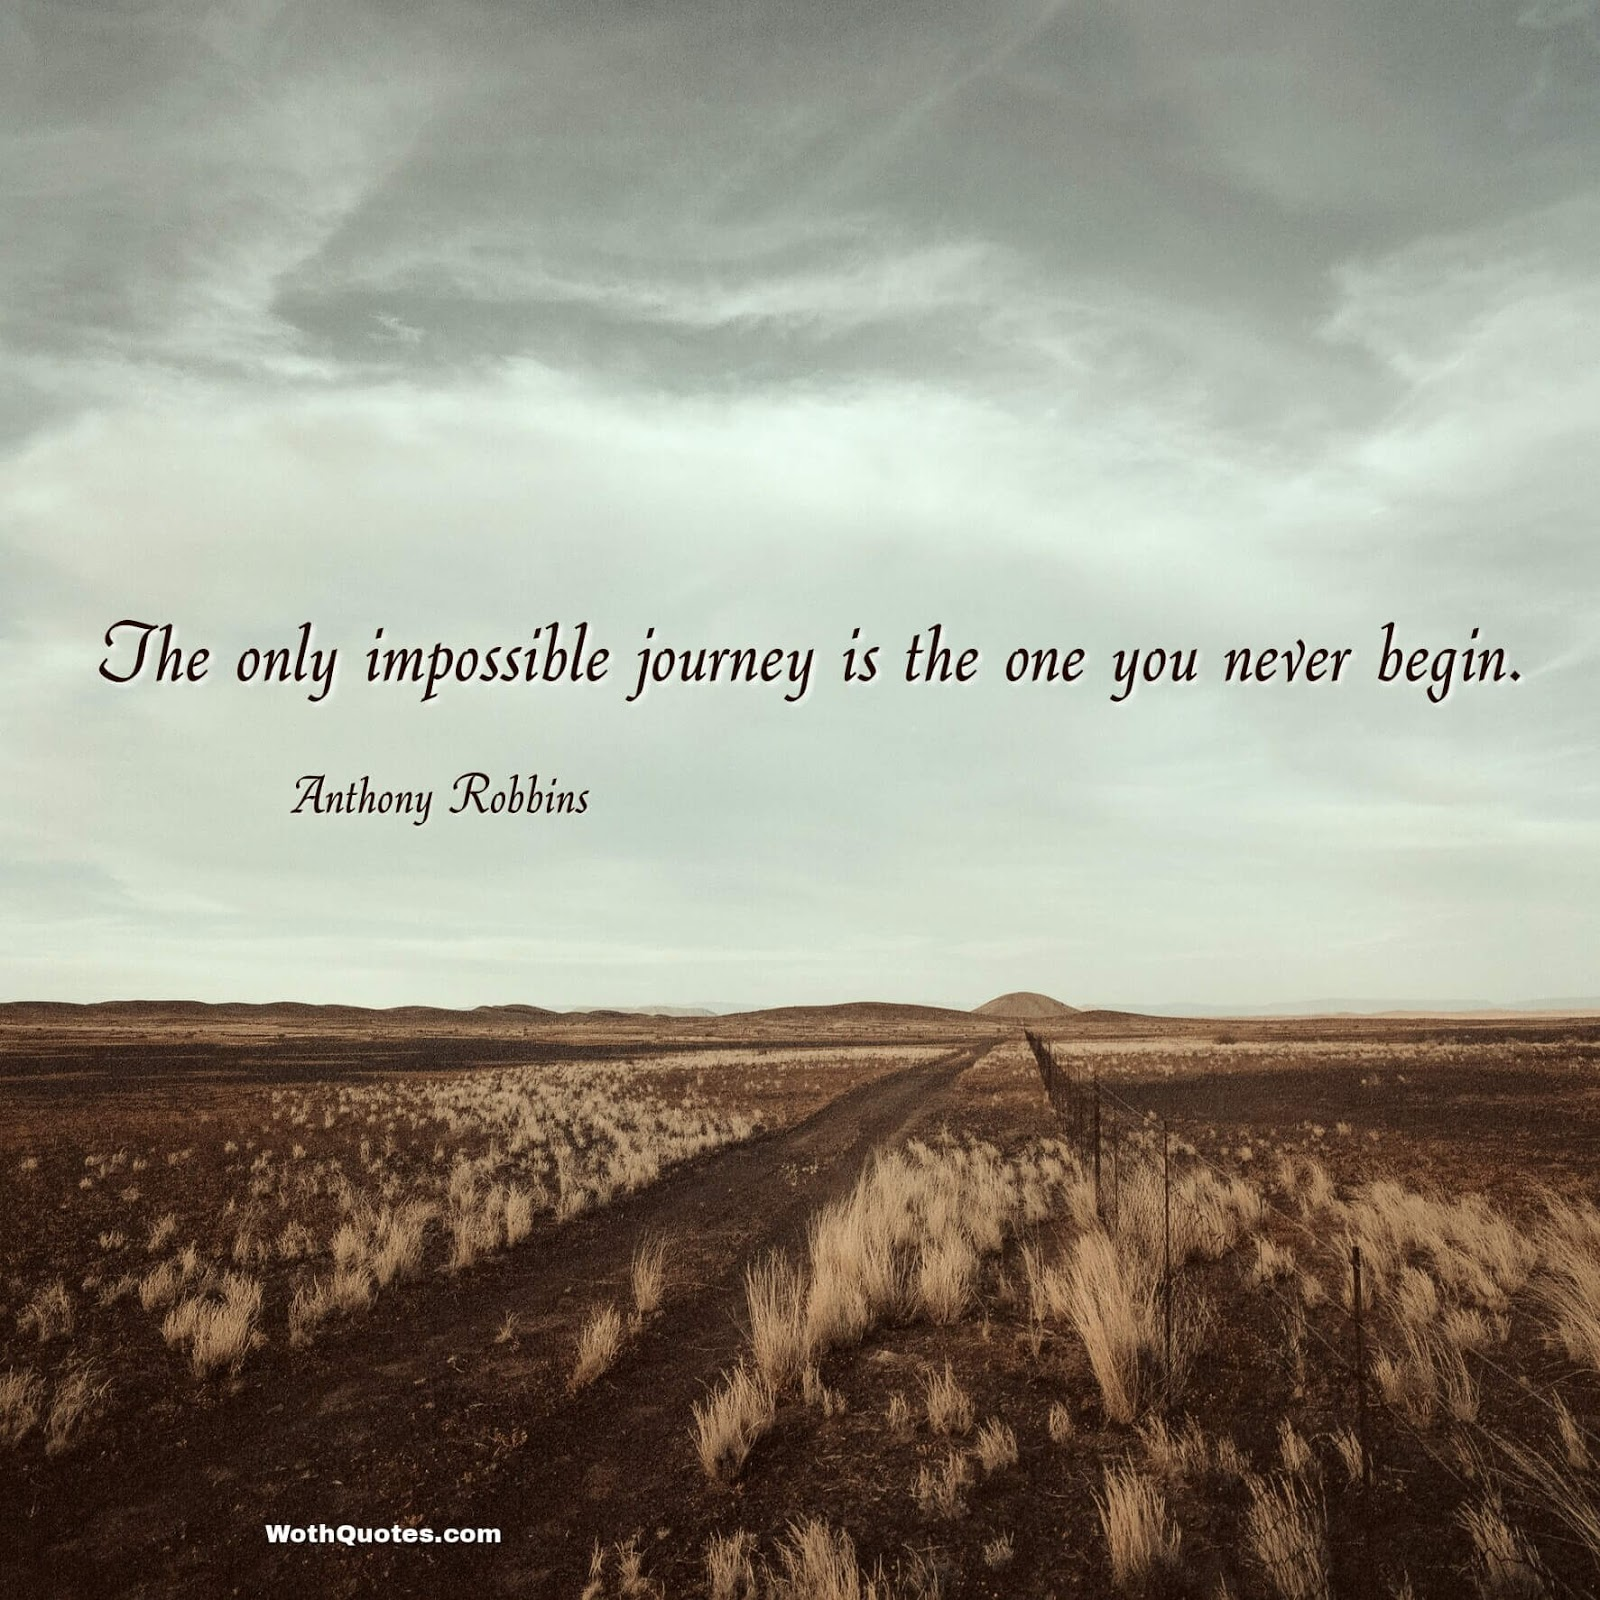 Quotes Journey Journey Quotes  Wisdom Of Life Journeys  Wothquotes Collection